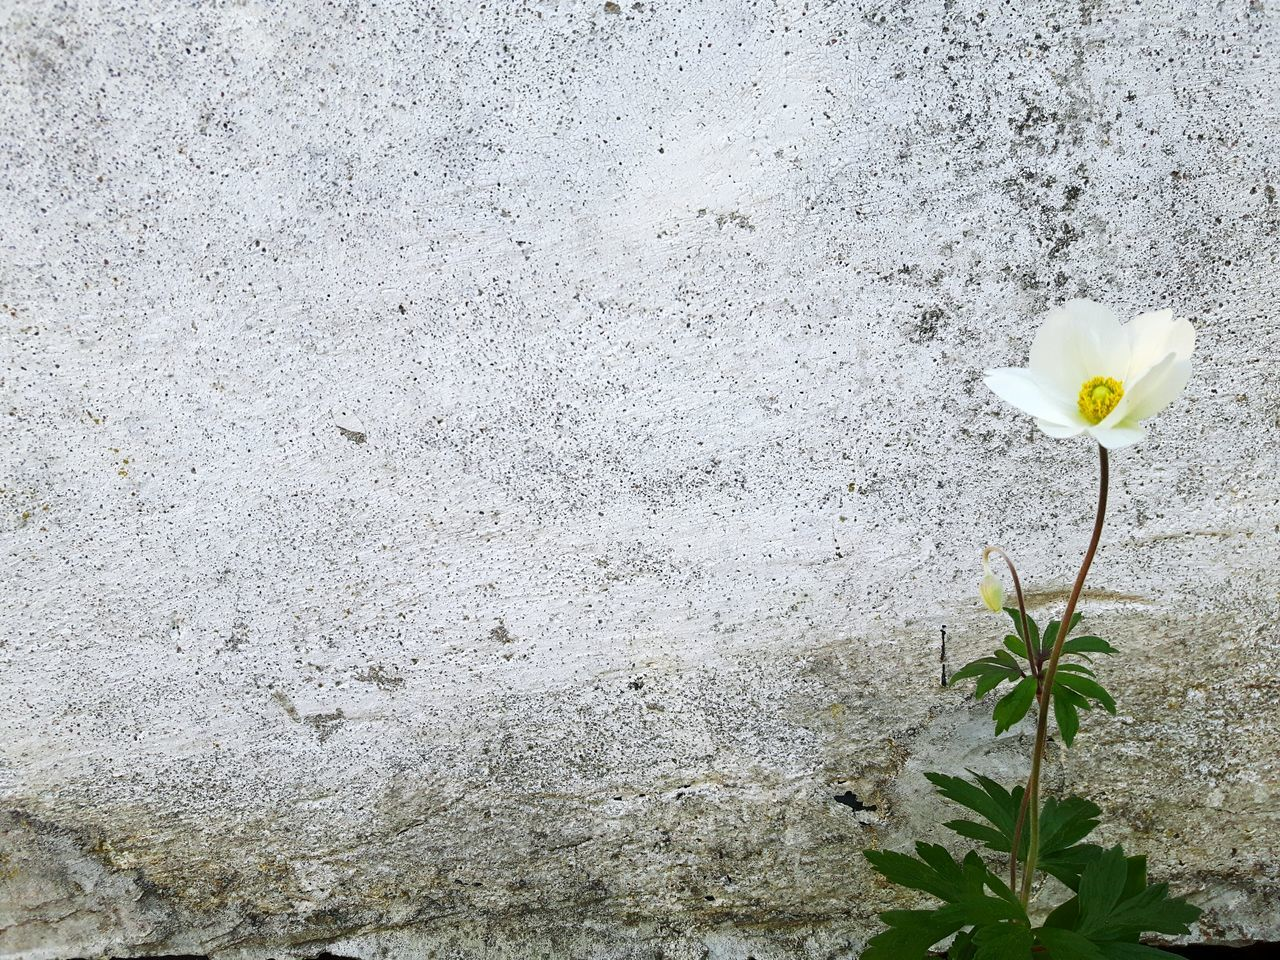 Single flower on a wall Flower Nature Plant Fragility Growth Day No People Outdoors Petal Close-up Beauty In Nature Leaf Backgrounds Flower Head Freshness Gardening Garden Beauty In Nature Ogrod Growth Garden Flowers Kwiaty Beauty Springtime Plant